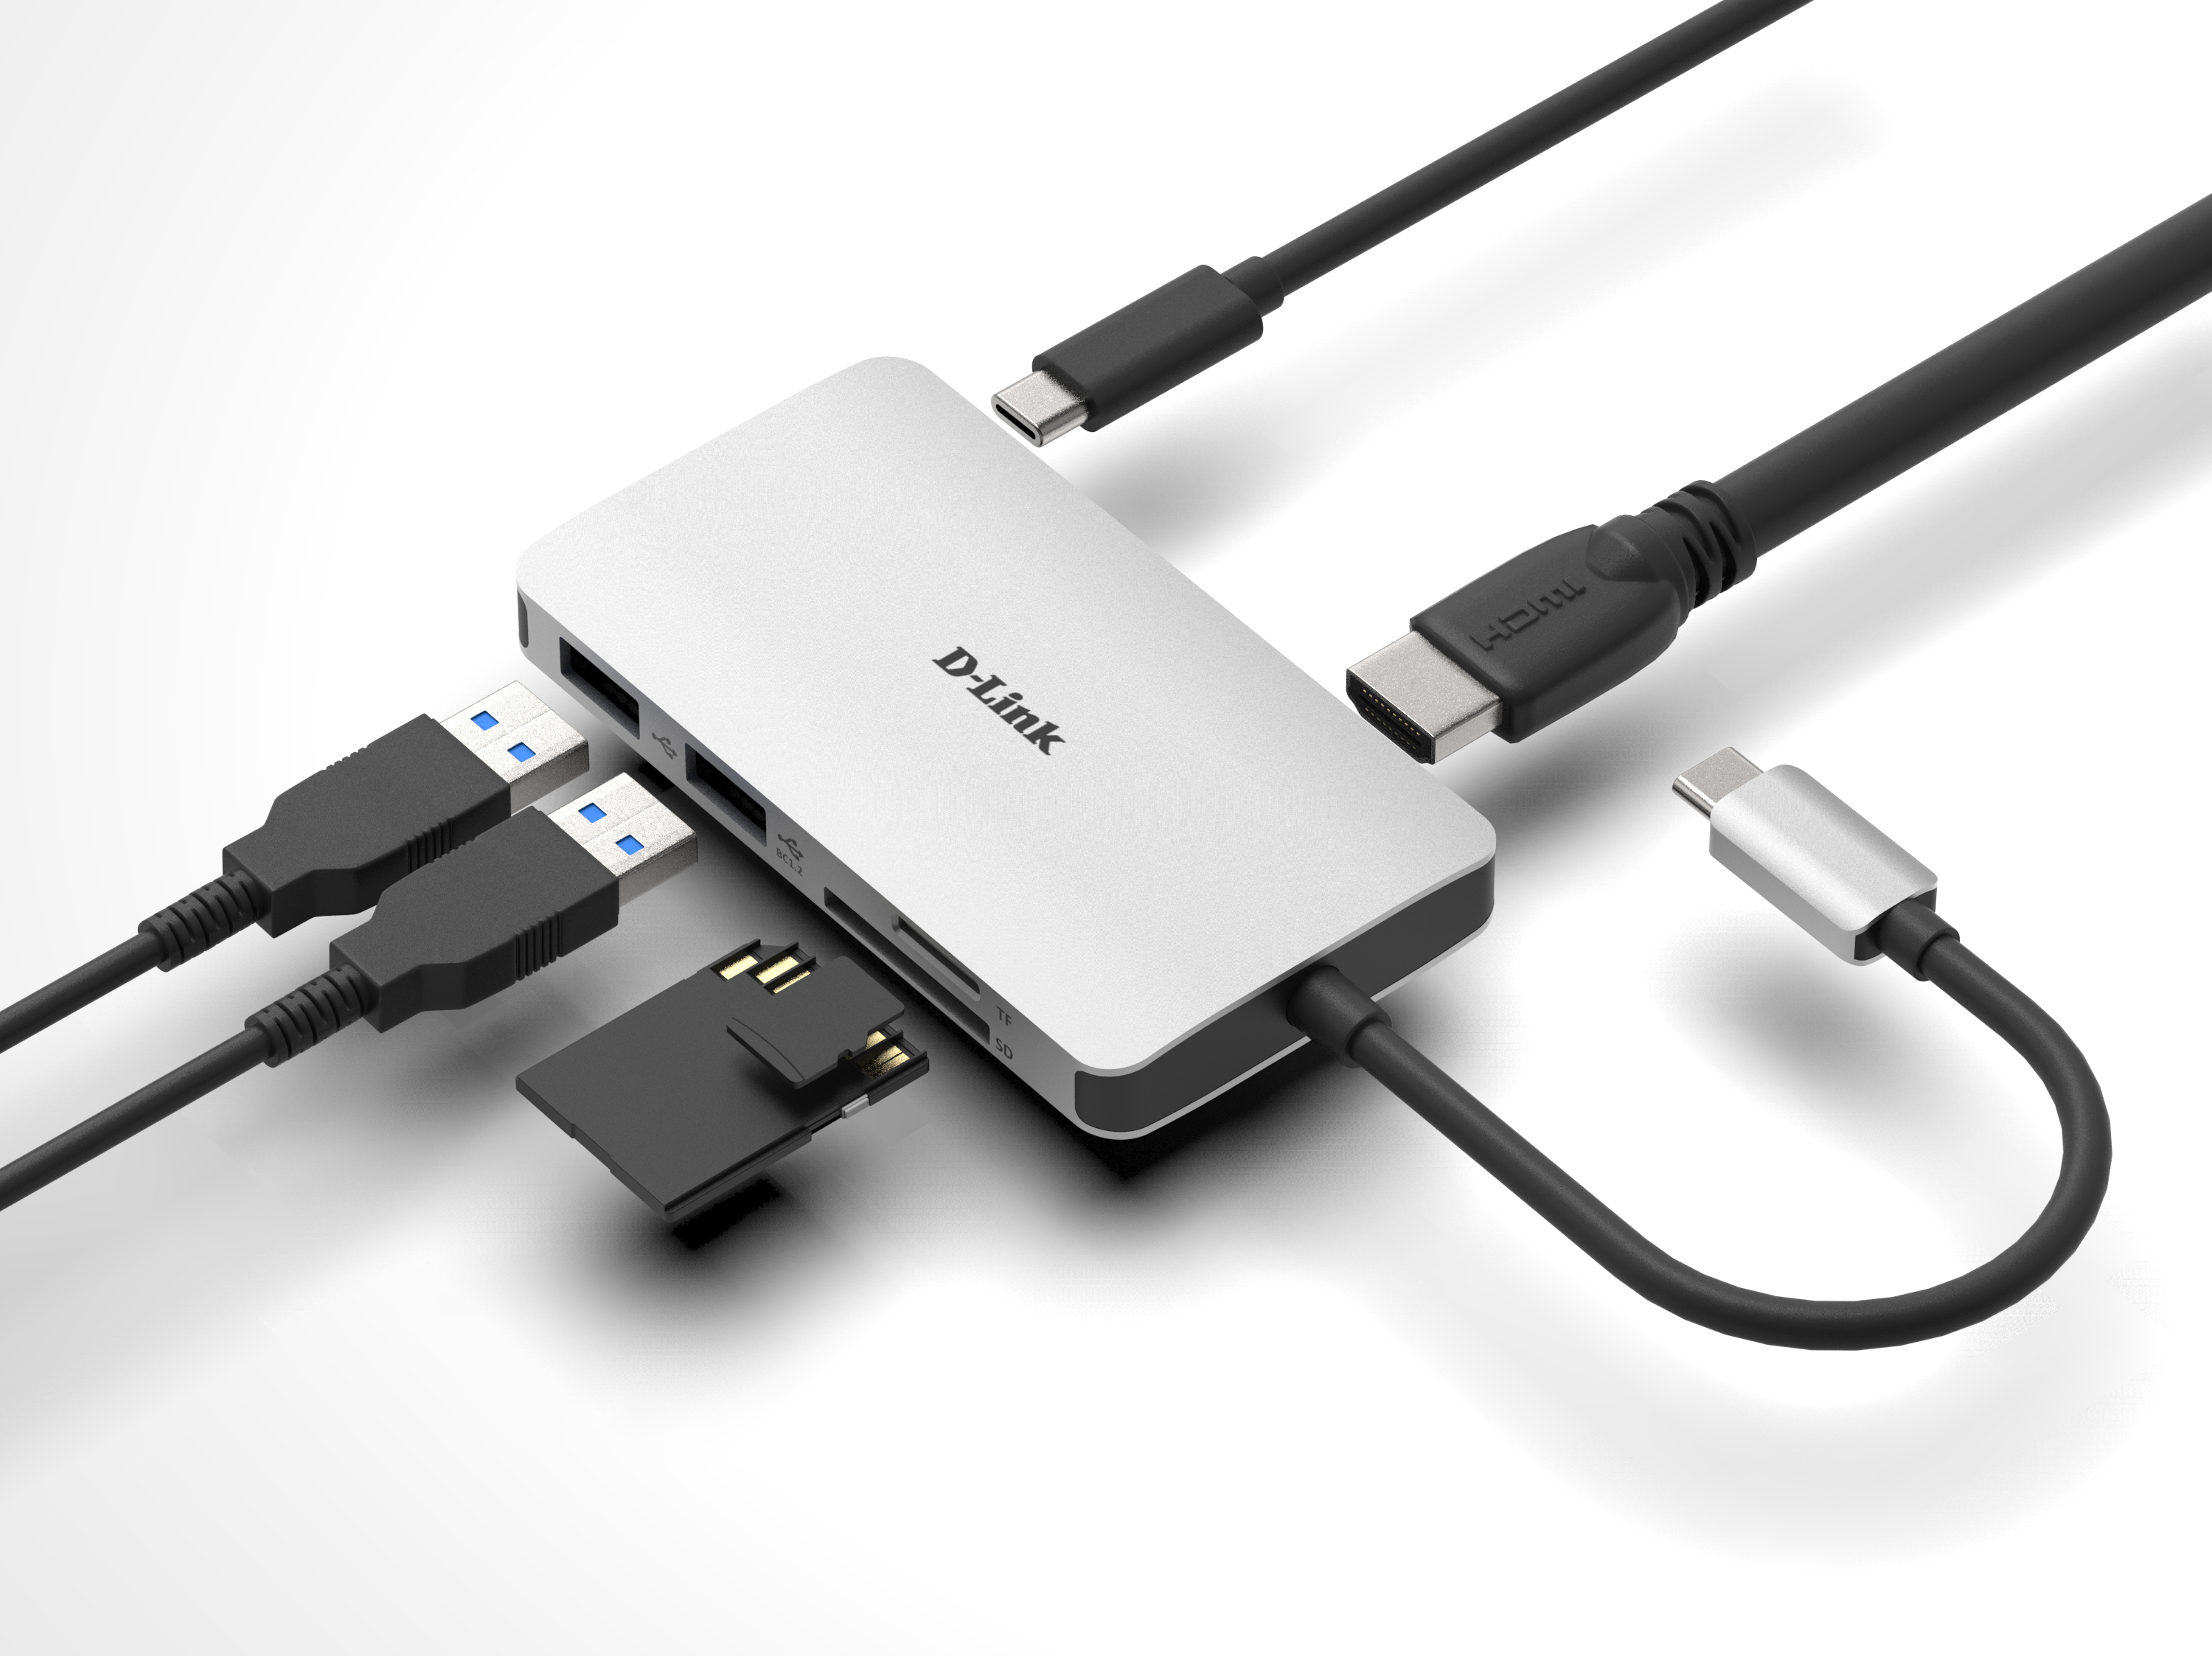 DUB-M610 6-in-1 USB-C Hub with HDMI/Card Reader/Power Delivery - example connections